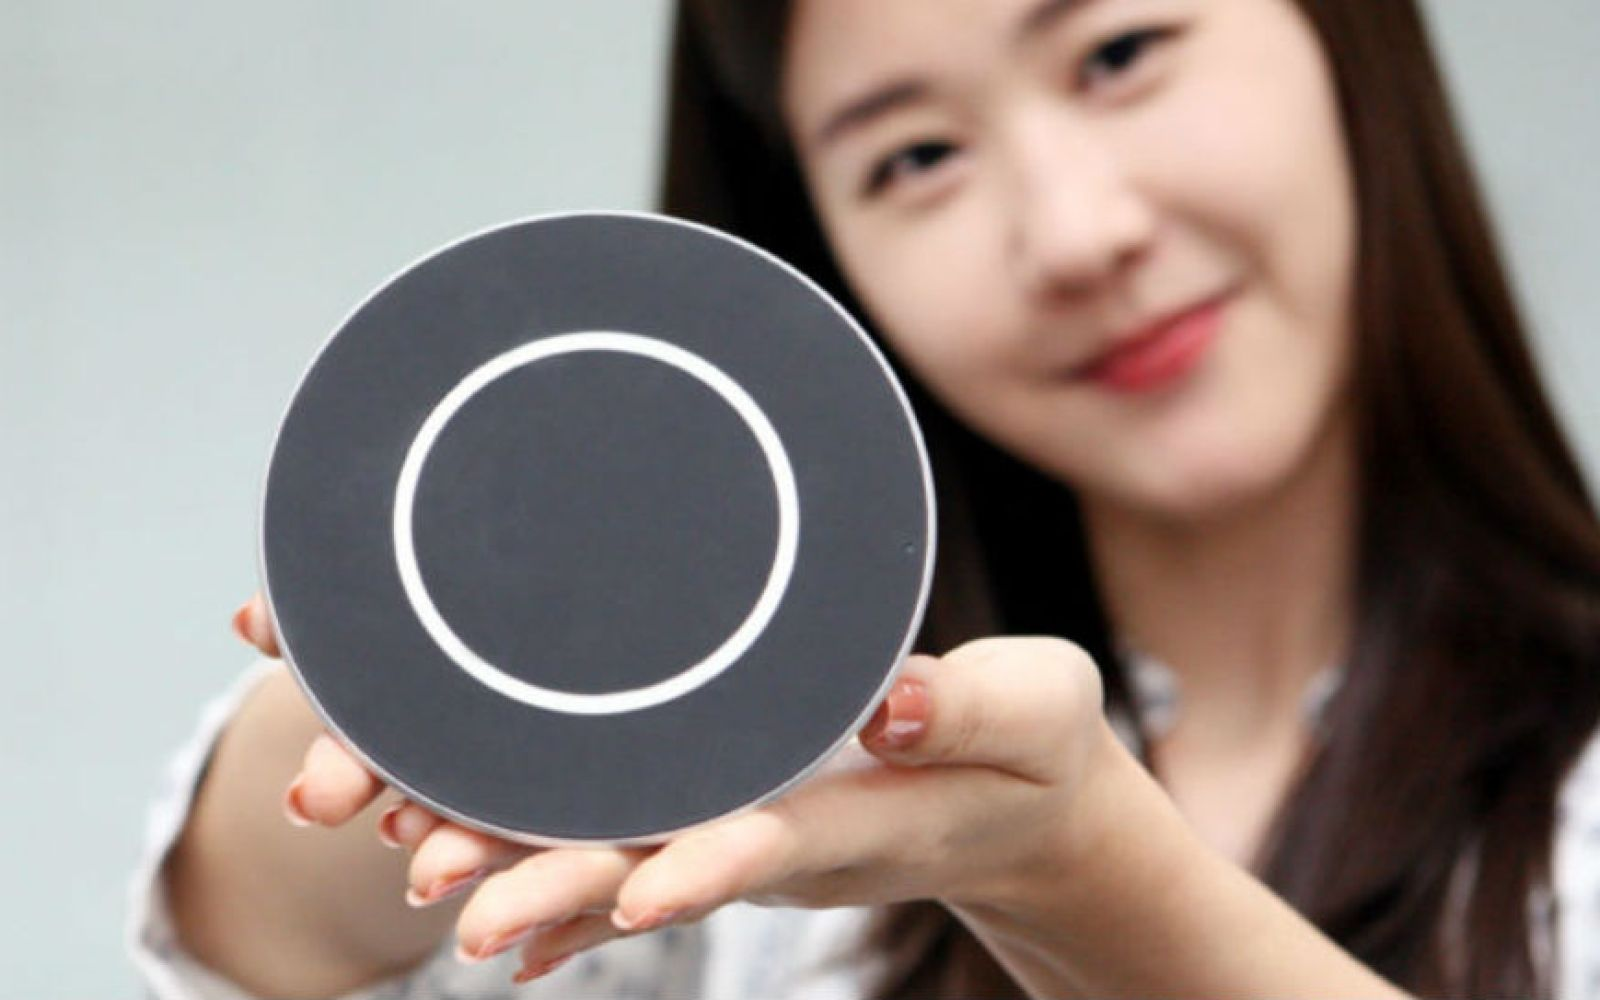 LG's new 15W wireless charger is almost as fast as your wired quick charger, goes on sale this month